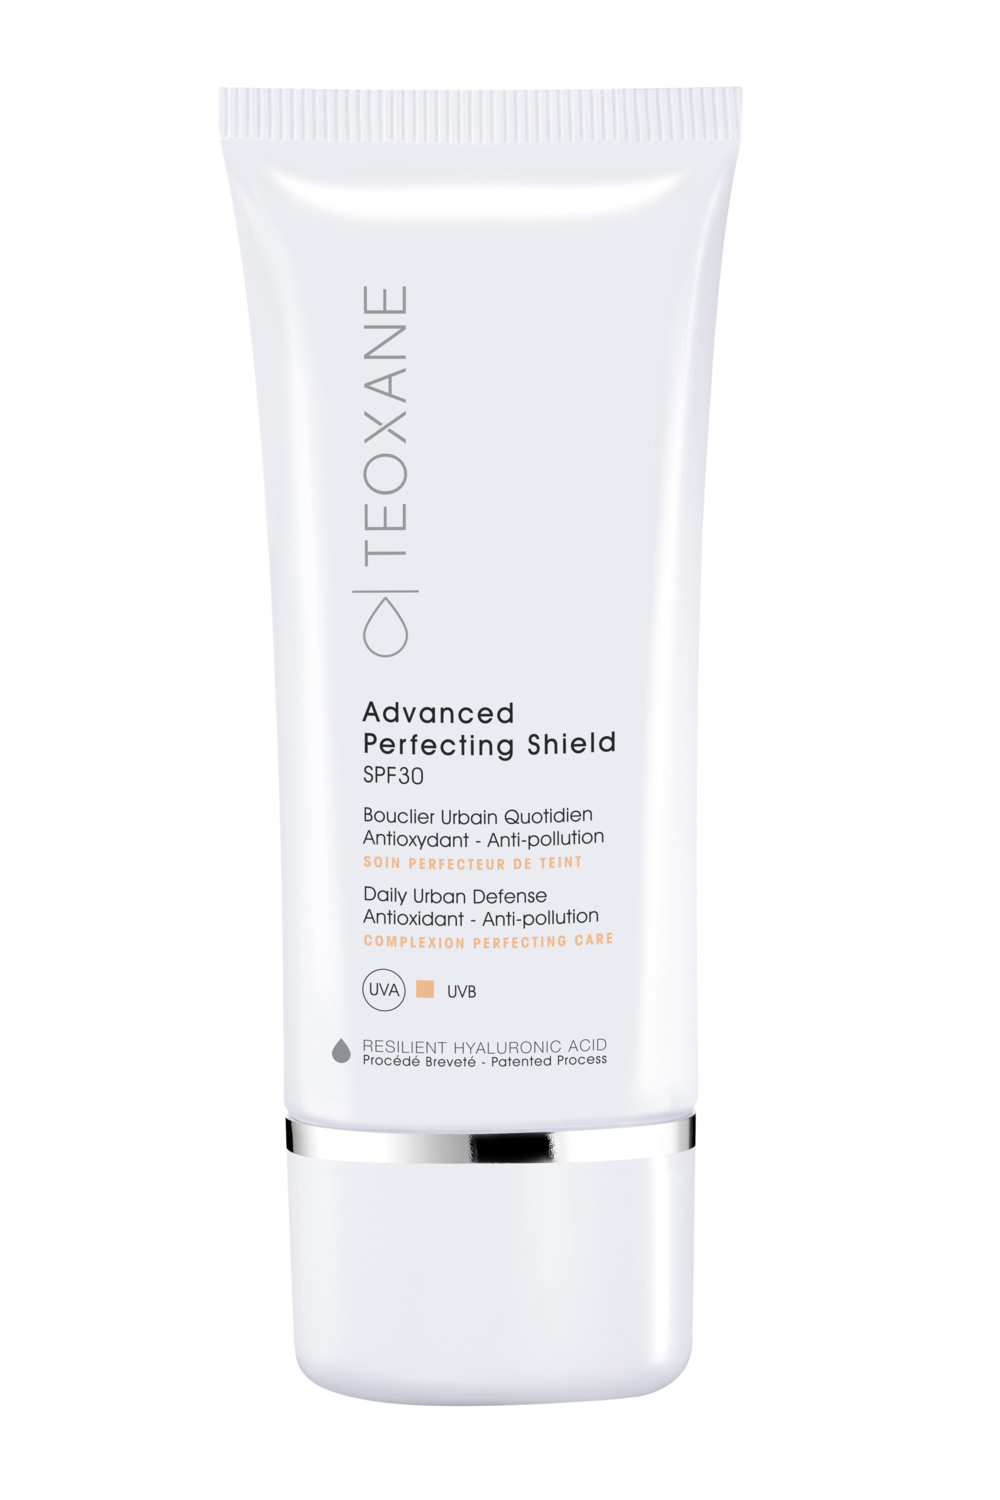 Crema Teoxane Advanced Perfecting Shield SPF30